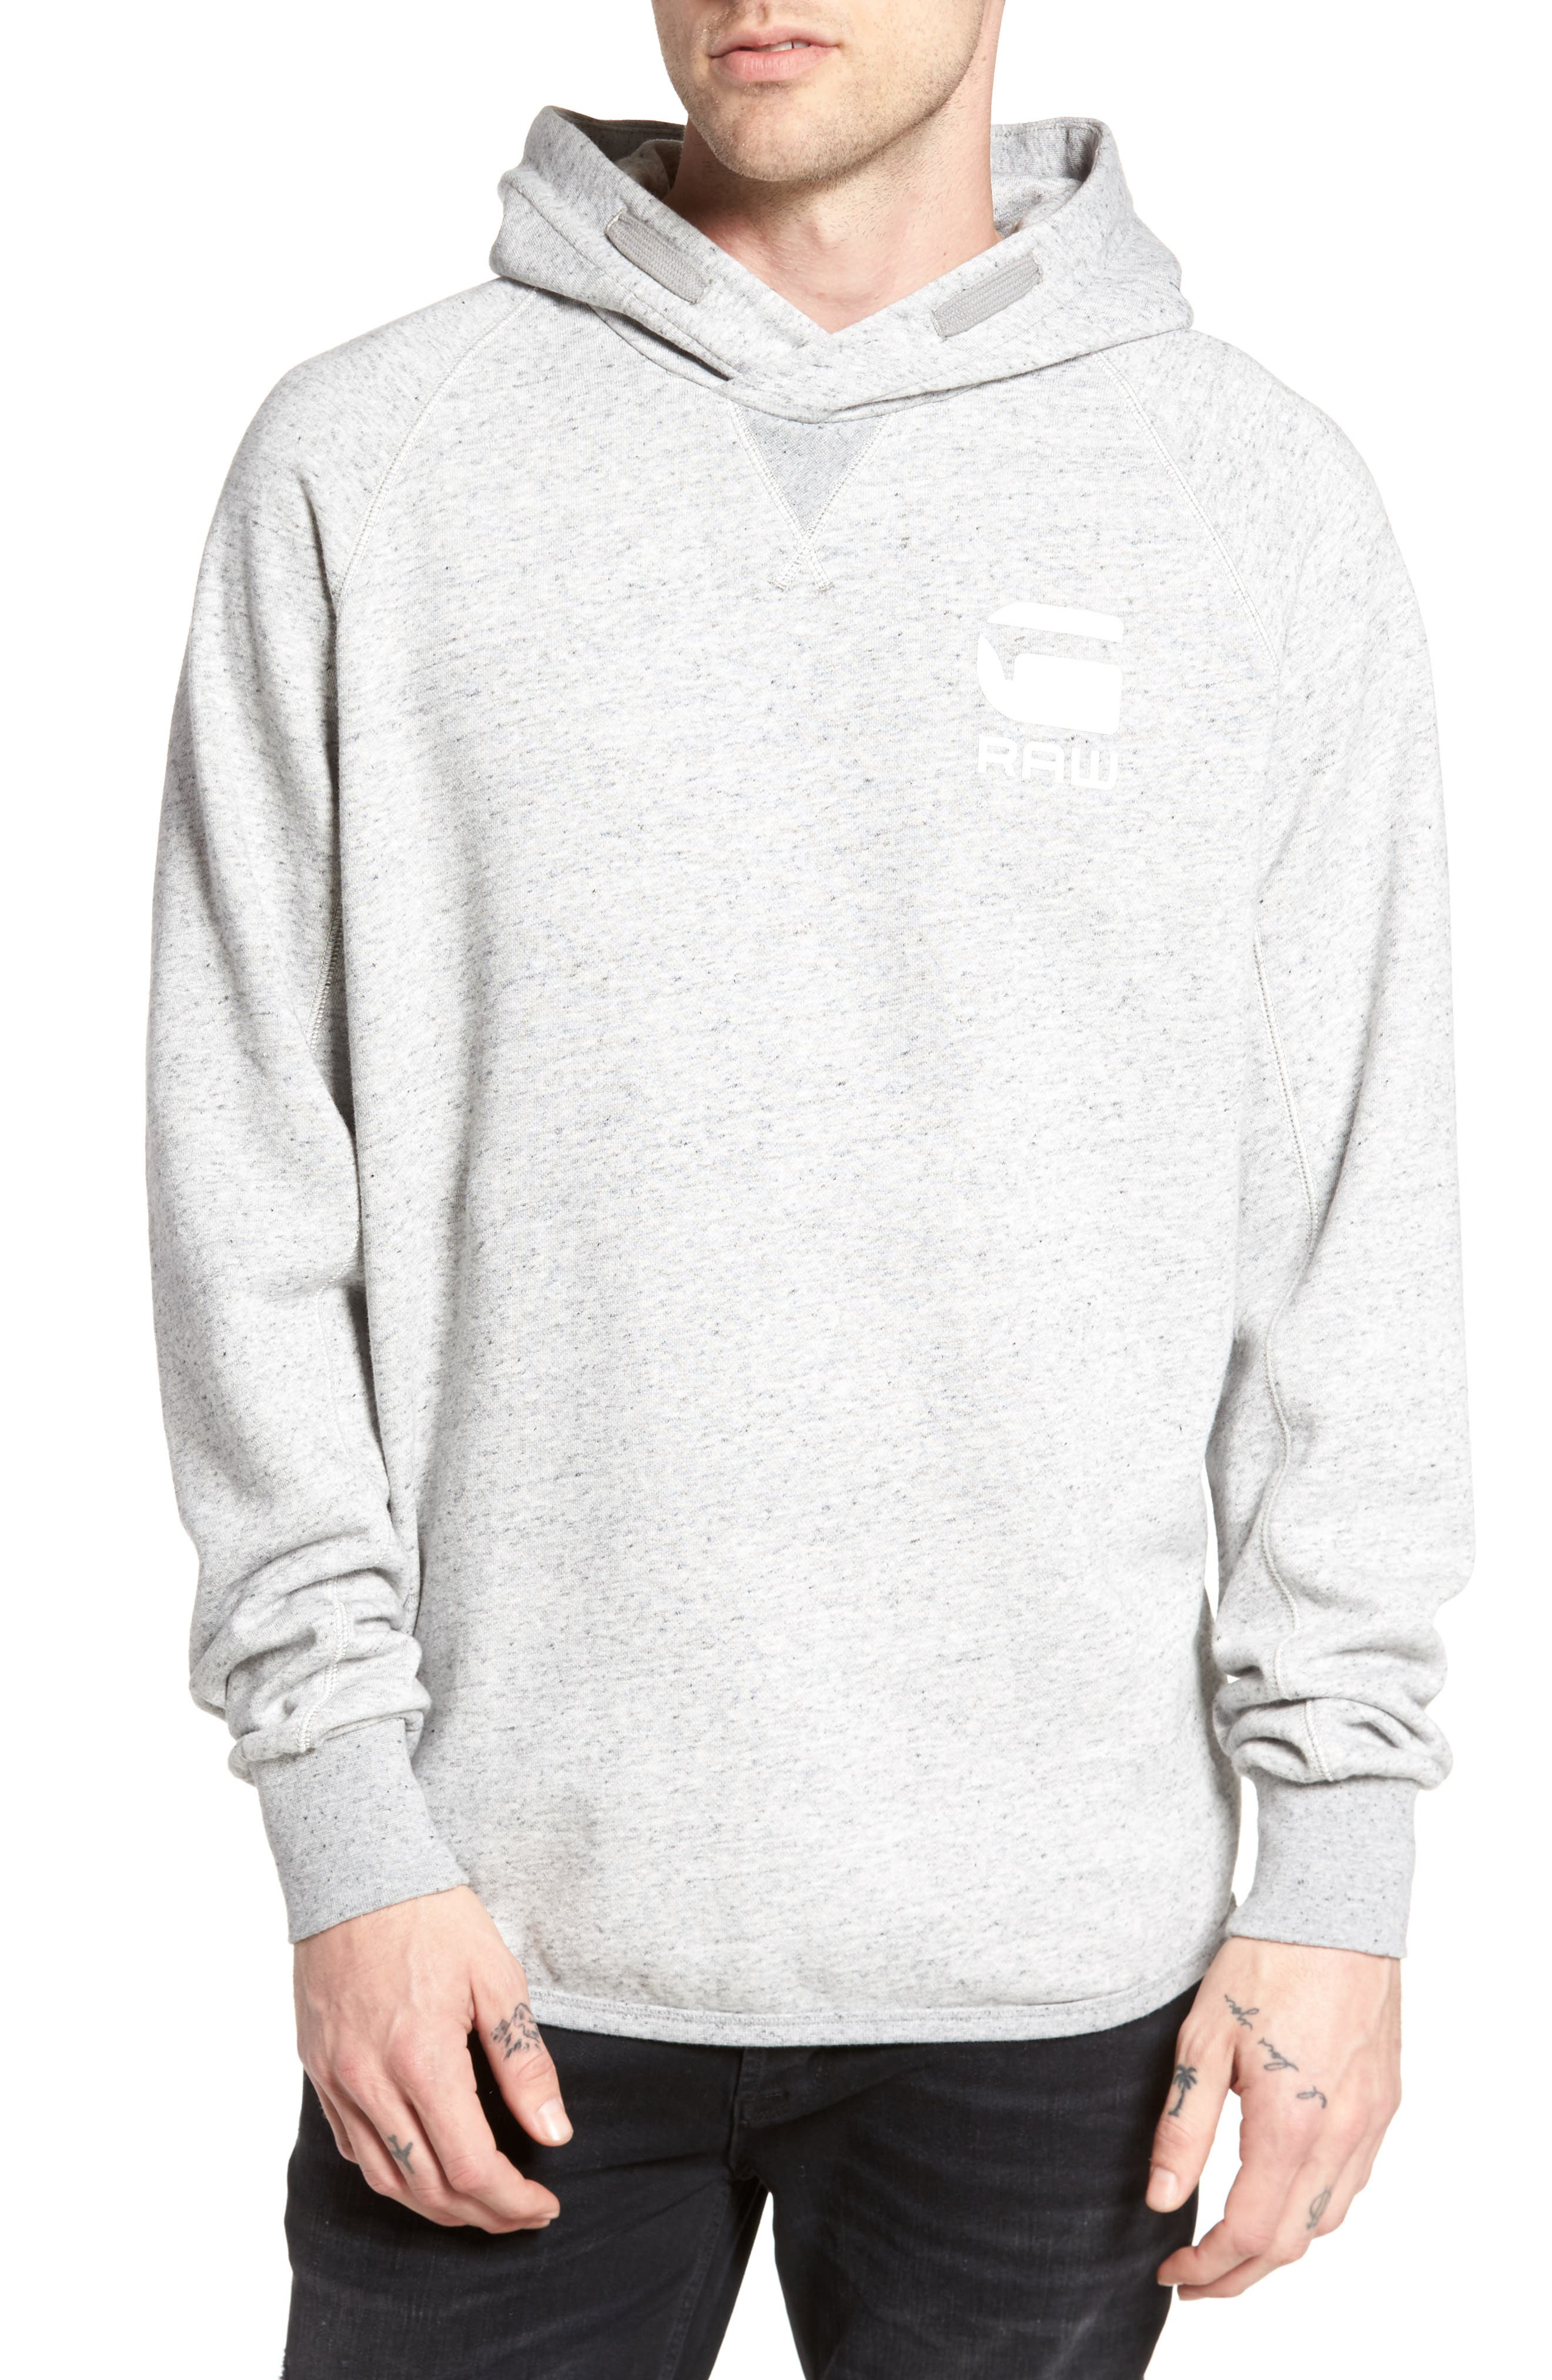 Callow Pullover Hoodie,                             Main thumbnail 1, color,                             Grey Heather